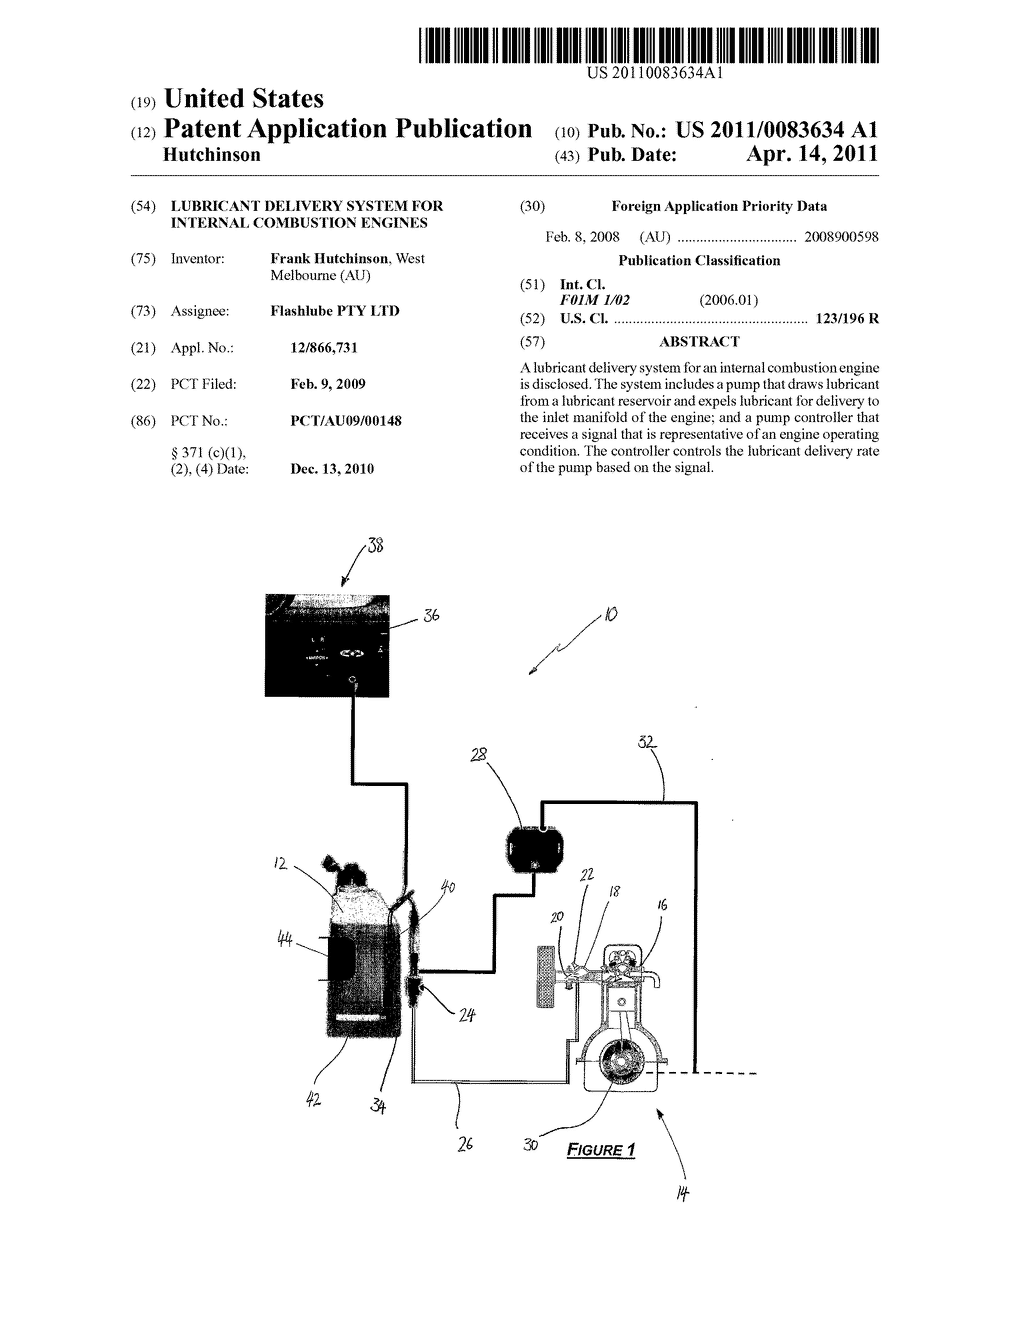 Lubricant Delivery System For Internal Combustion Engines Diagram Illustrated Of A Basic Engine Schematic And Image 01